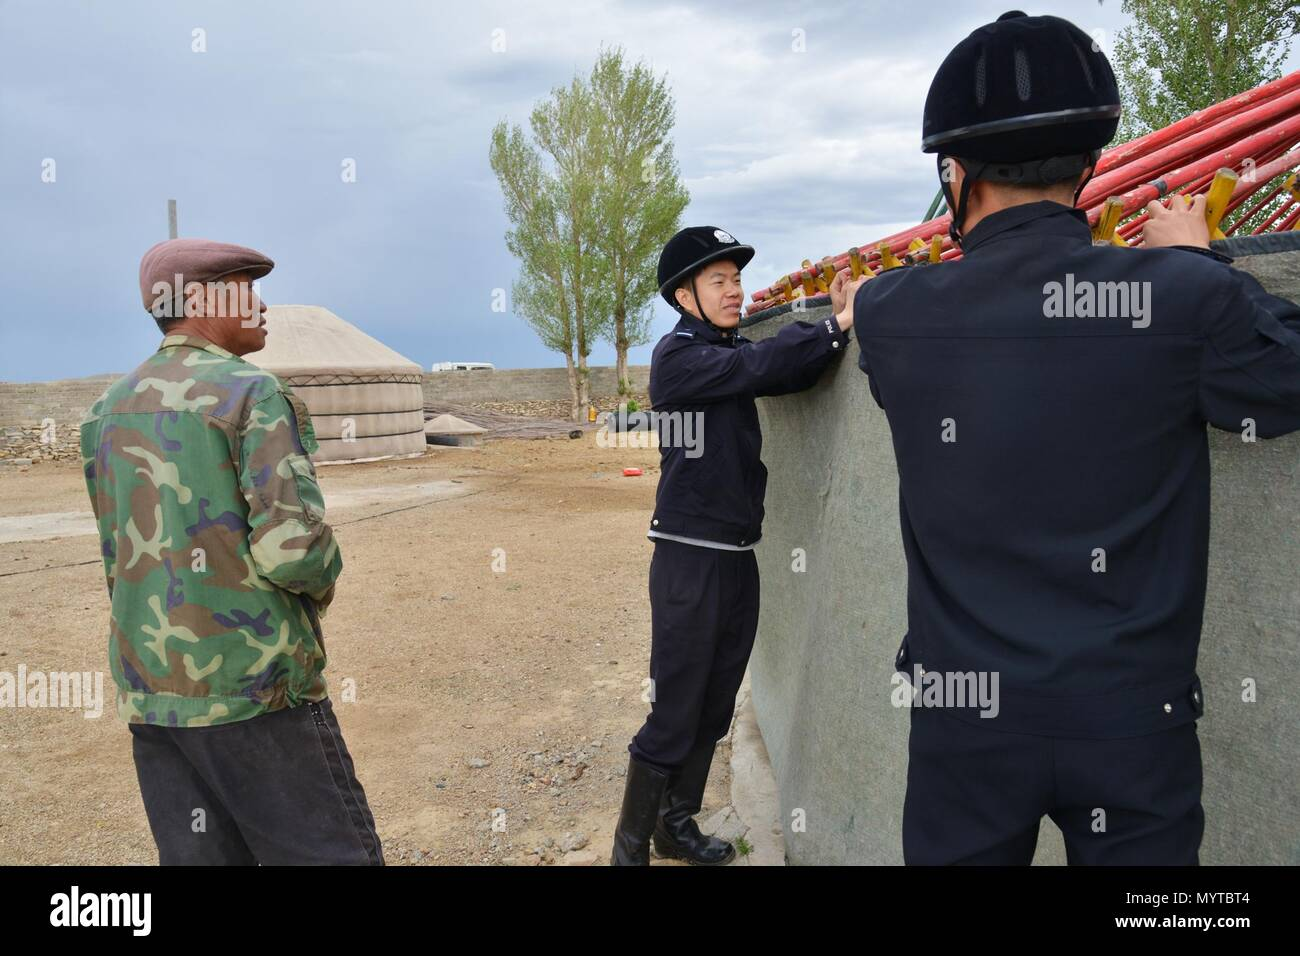 (180608) -- XILINHOT, June 8, 2018 (Xinhua) -- Mounted policemen help a herdsman build Mongolian yurt in Xilinhot, north China's Inner Mongolia Autonomous Region, June 7, 2018. In order to keep railroads in operation, mounted police in Xilinhot are busy repairing broken safety net and checking livestock intrusion while patrolling along railroads. (Xinhua/Zou Yu) (wyl) - Stock Image